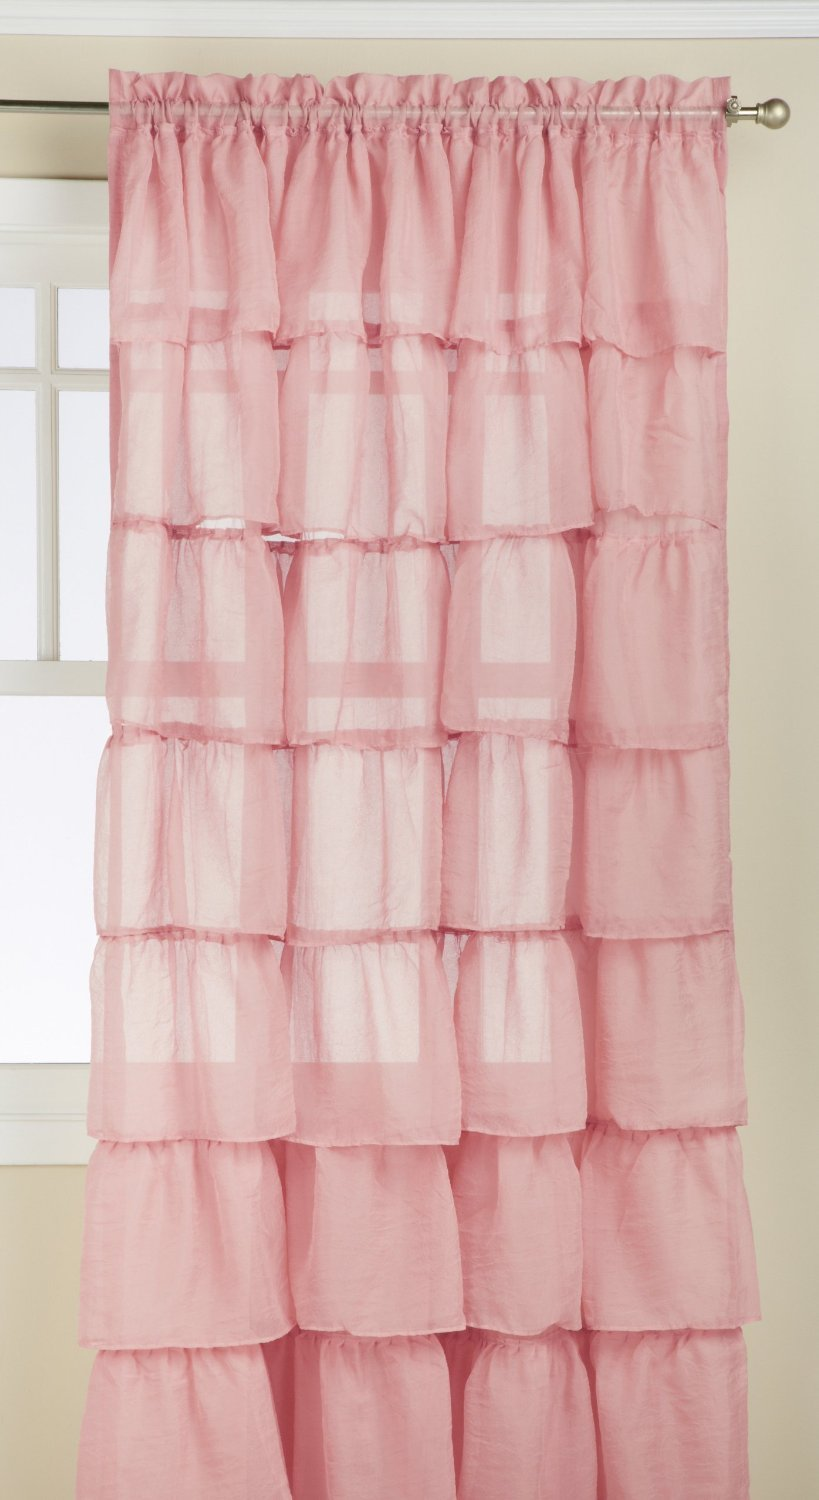 fabric transform ruffles panel very one shannon side can gorgeous curtain instantly best re double a gauze the metallic projects any ae makes is ways curtains panels to embrace room with ruffle they fresh new of